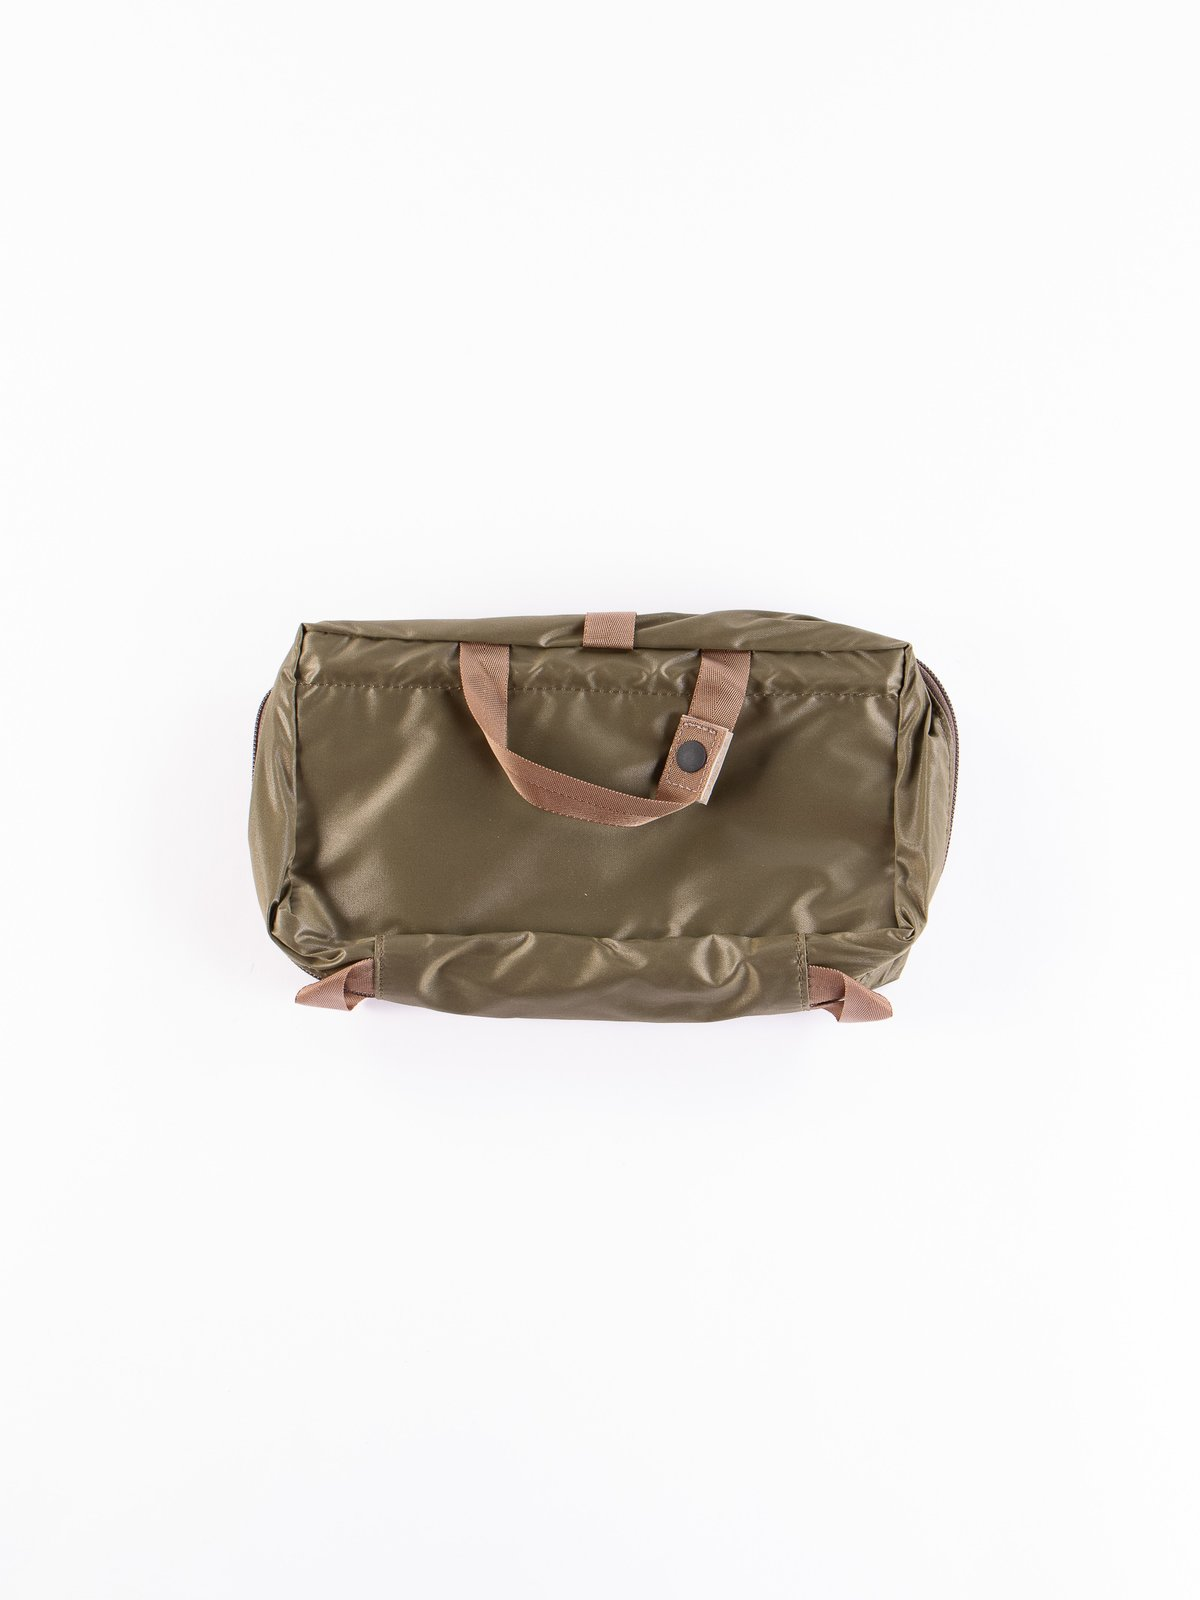 Olive Drab Snack Pack 09811 Cosme Pouch - Image 3